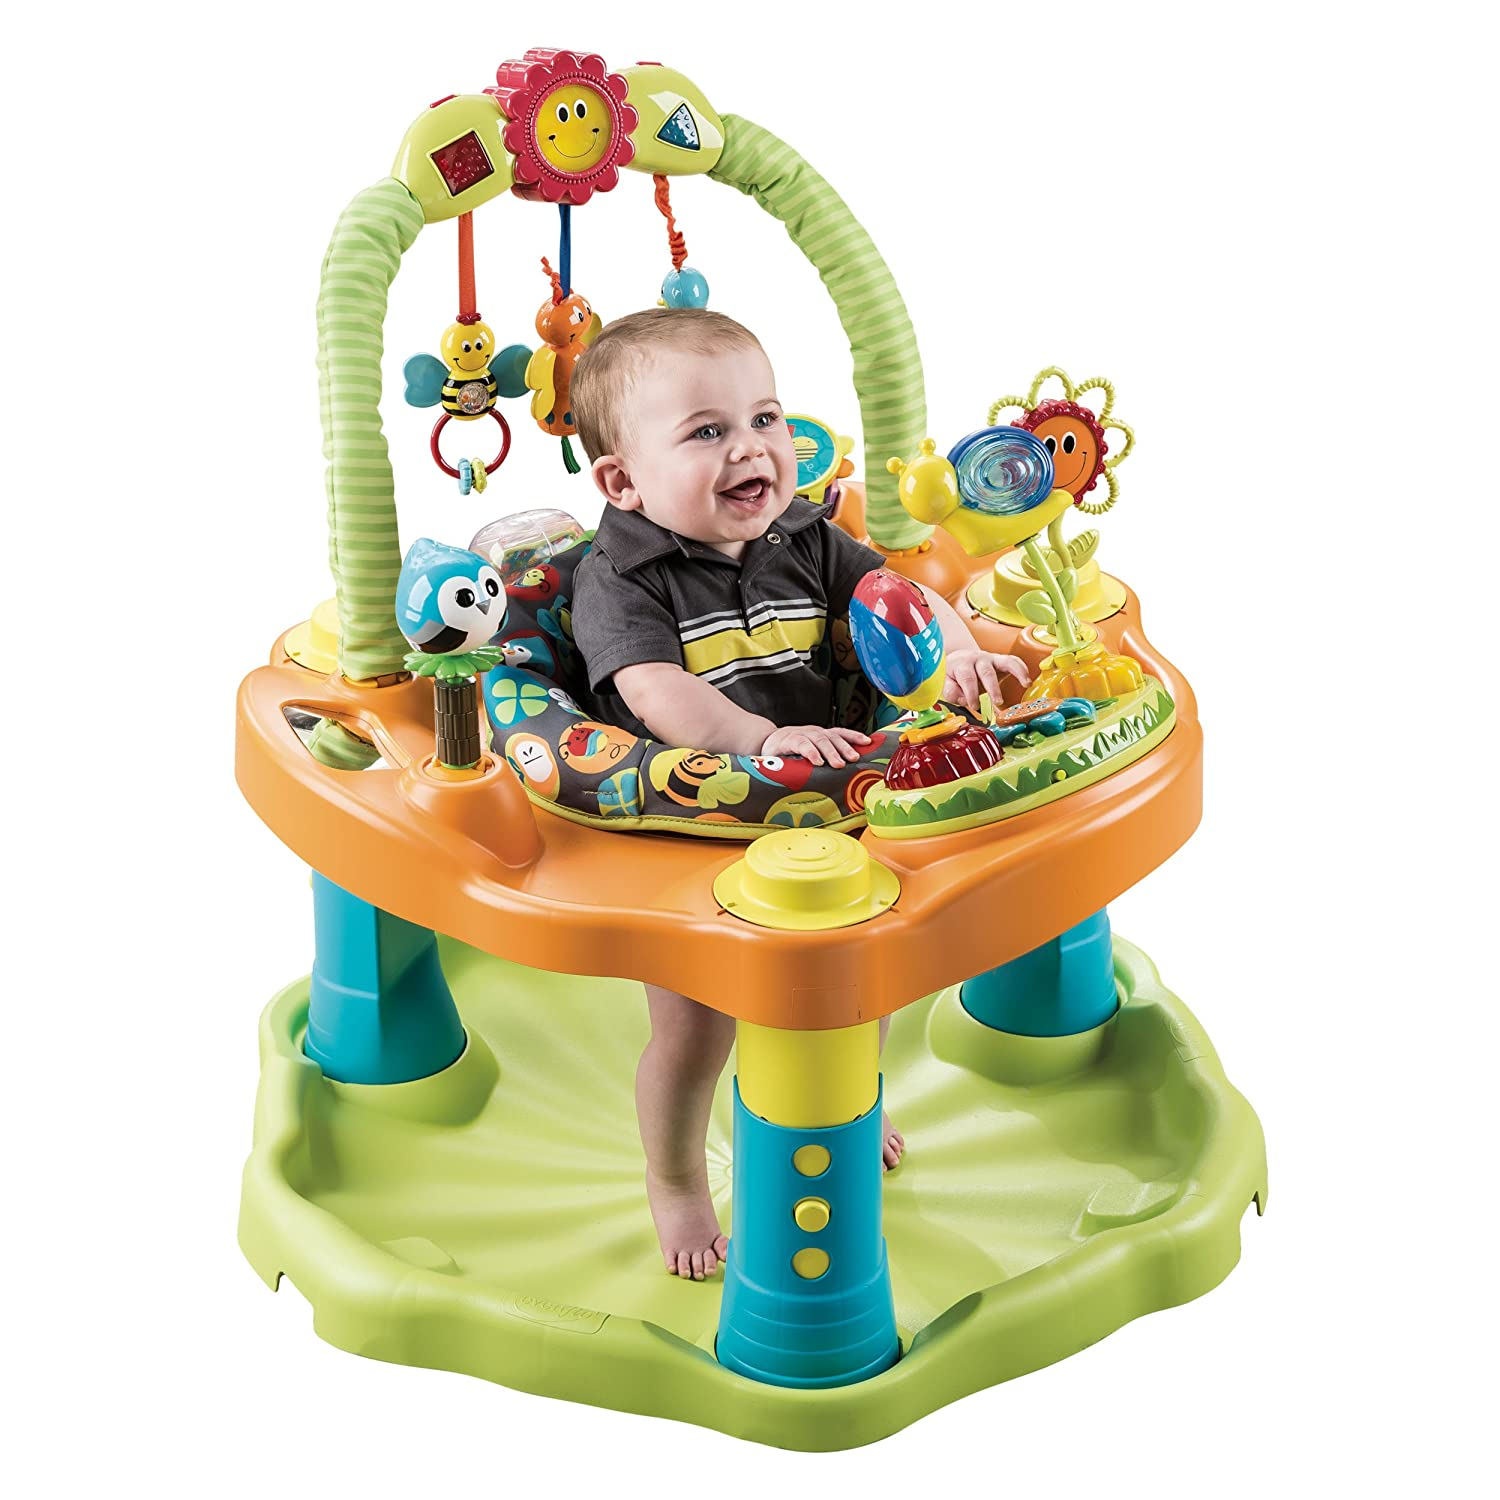 Evenflo ExerSaucer for Baby Double Fun Saucer, Bumbly